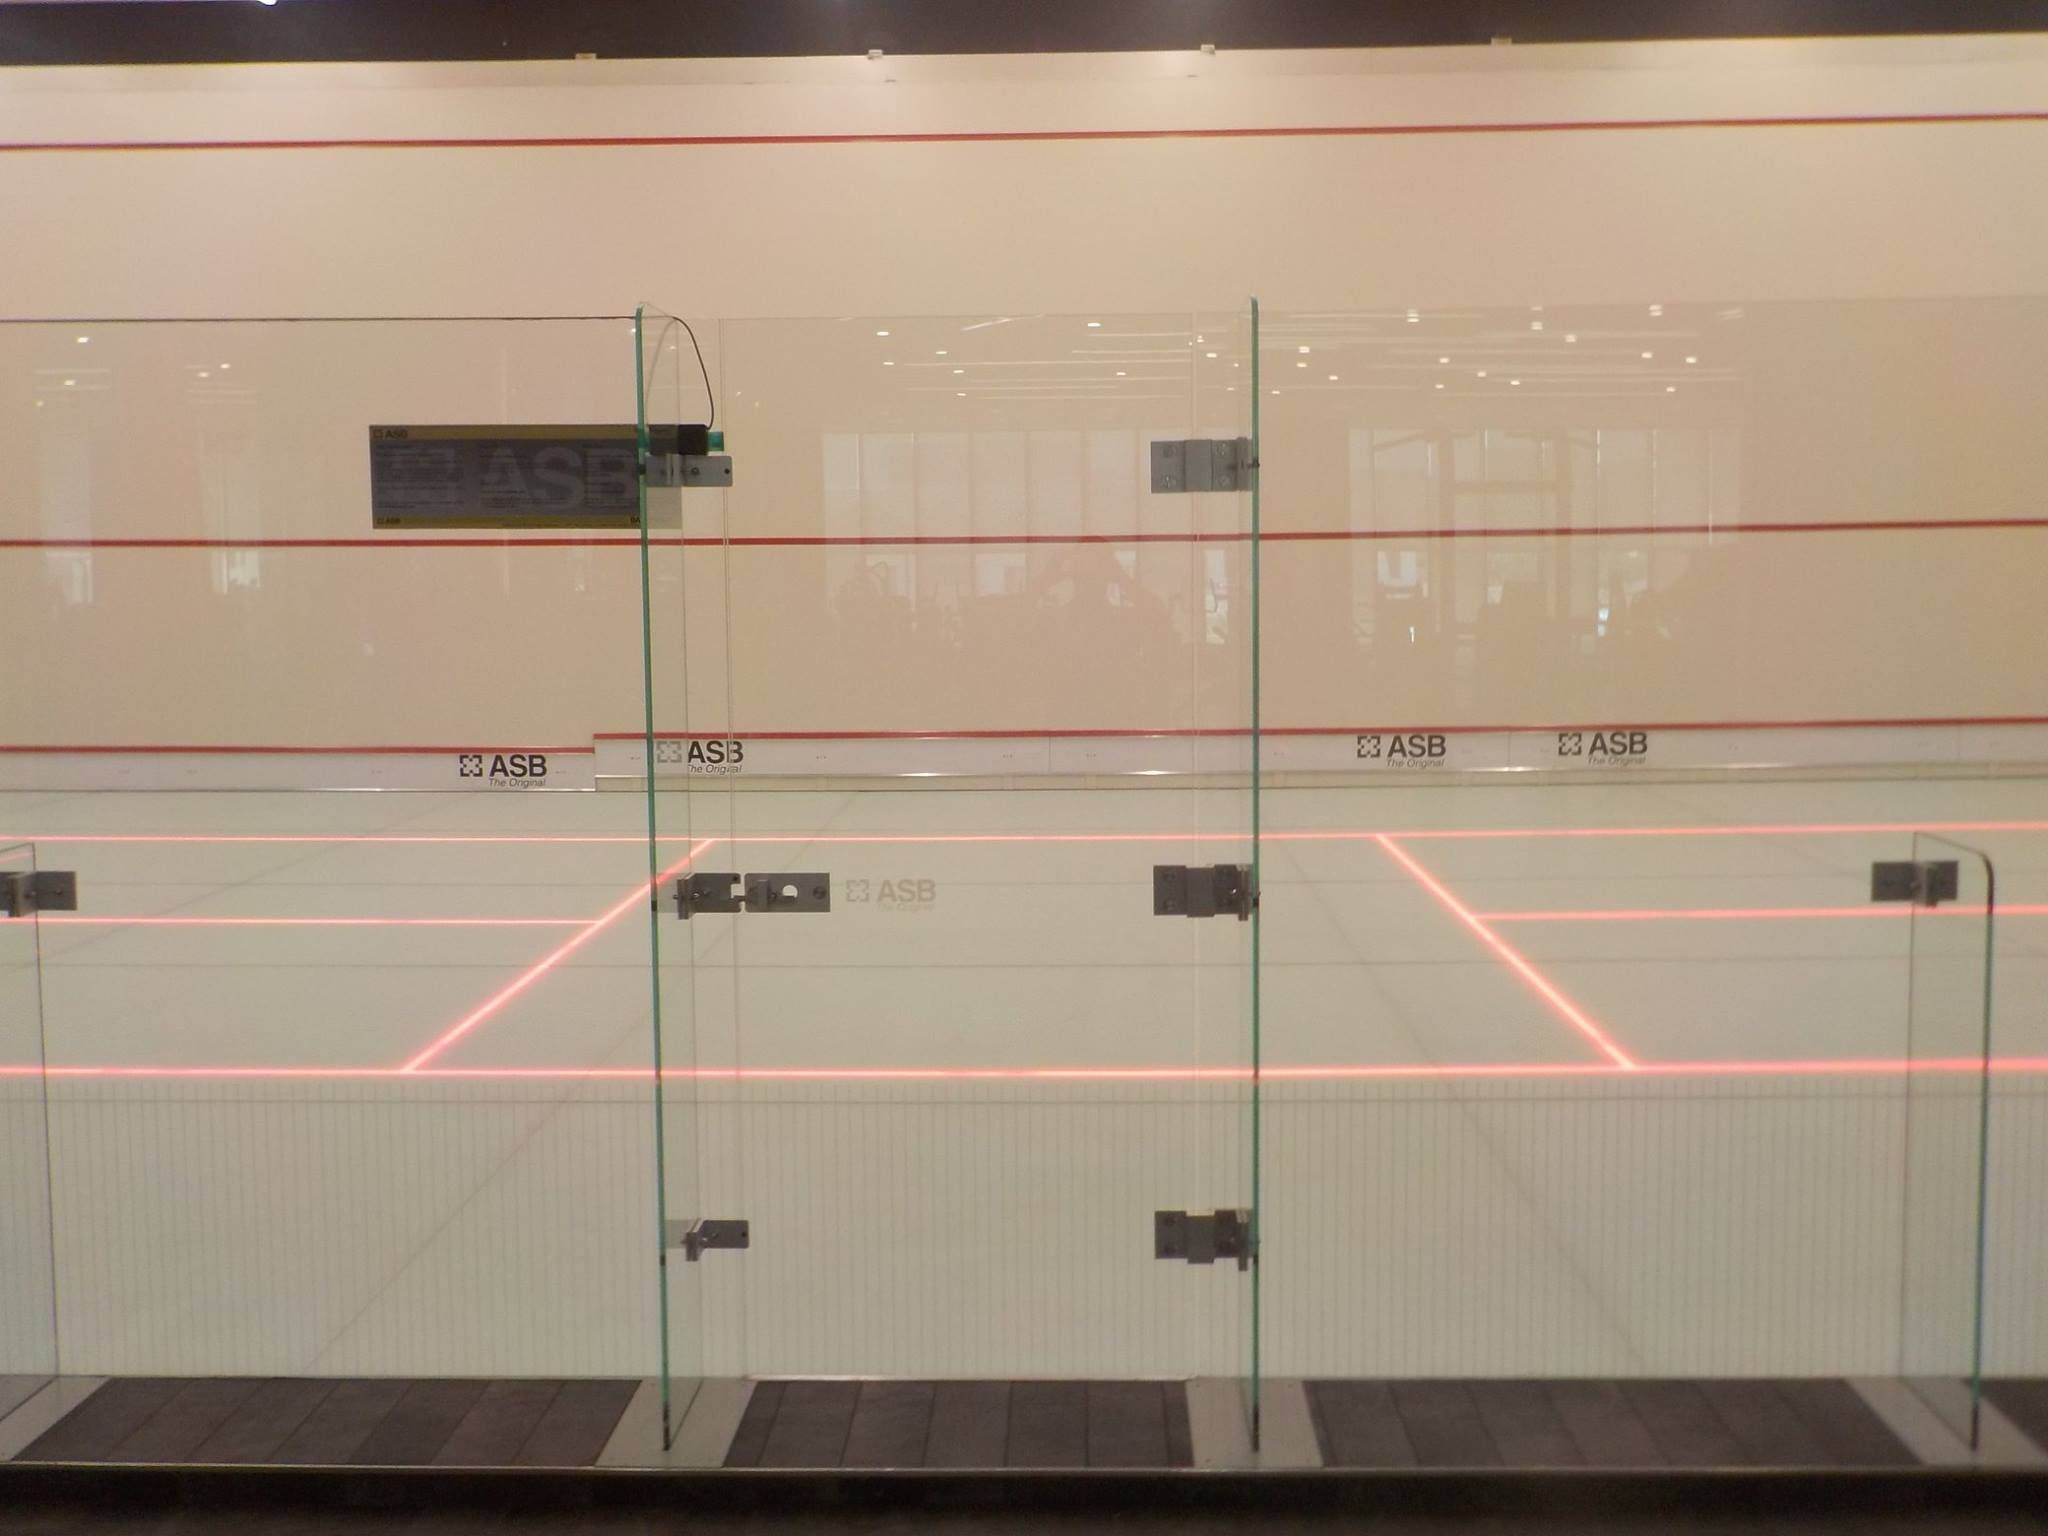 ASB Squash courts turned into Badminton field 1) move